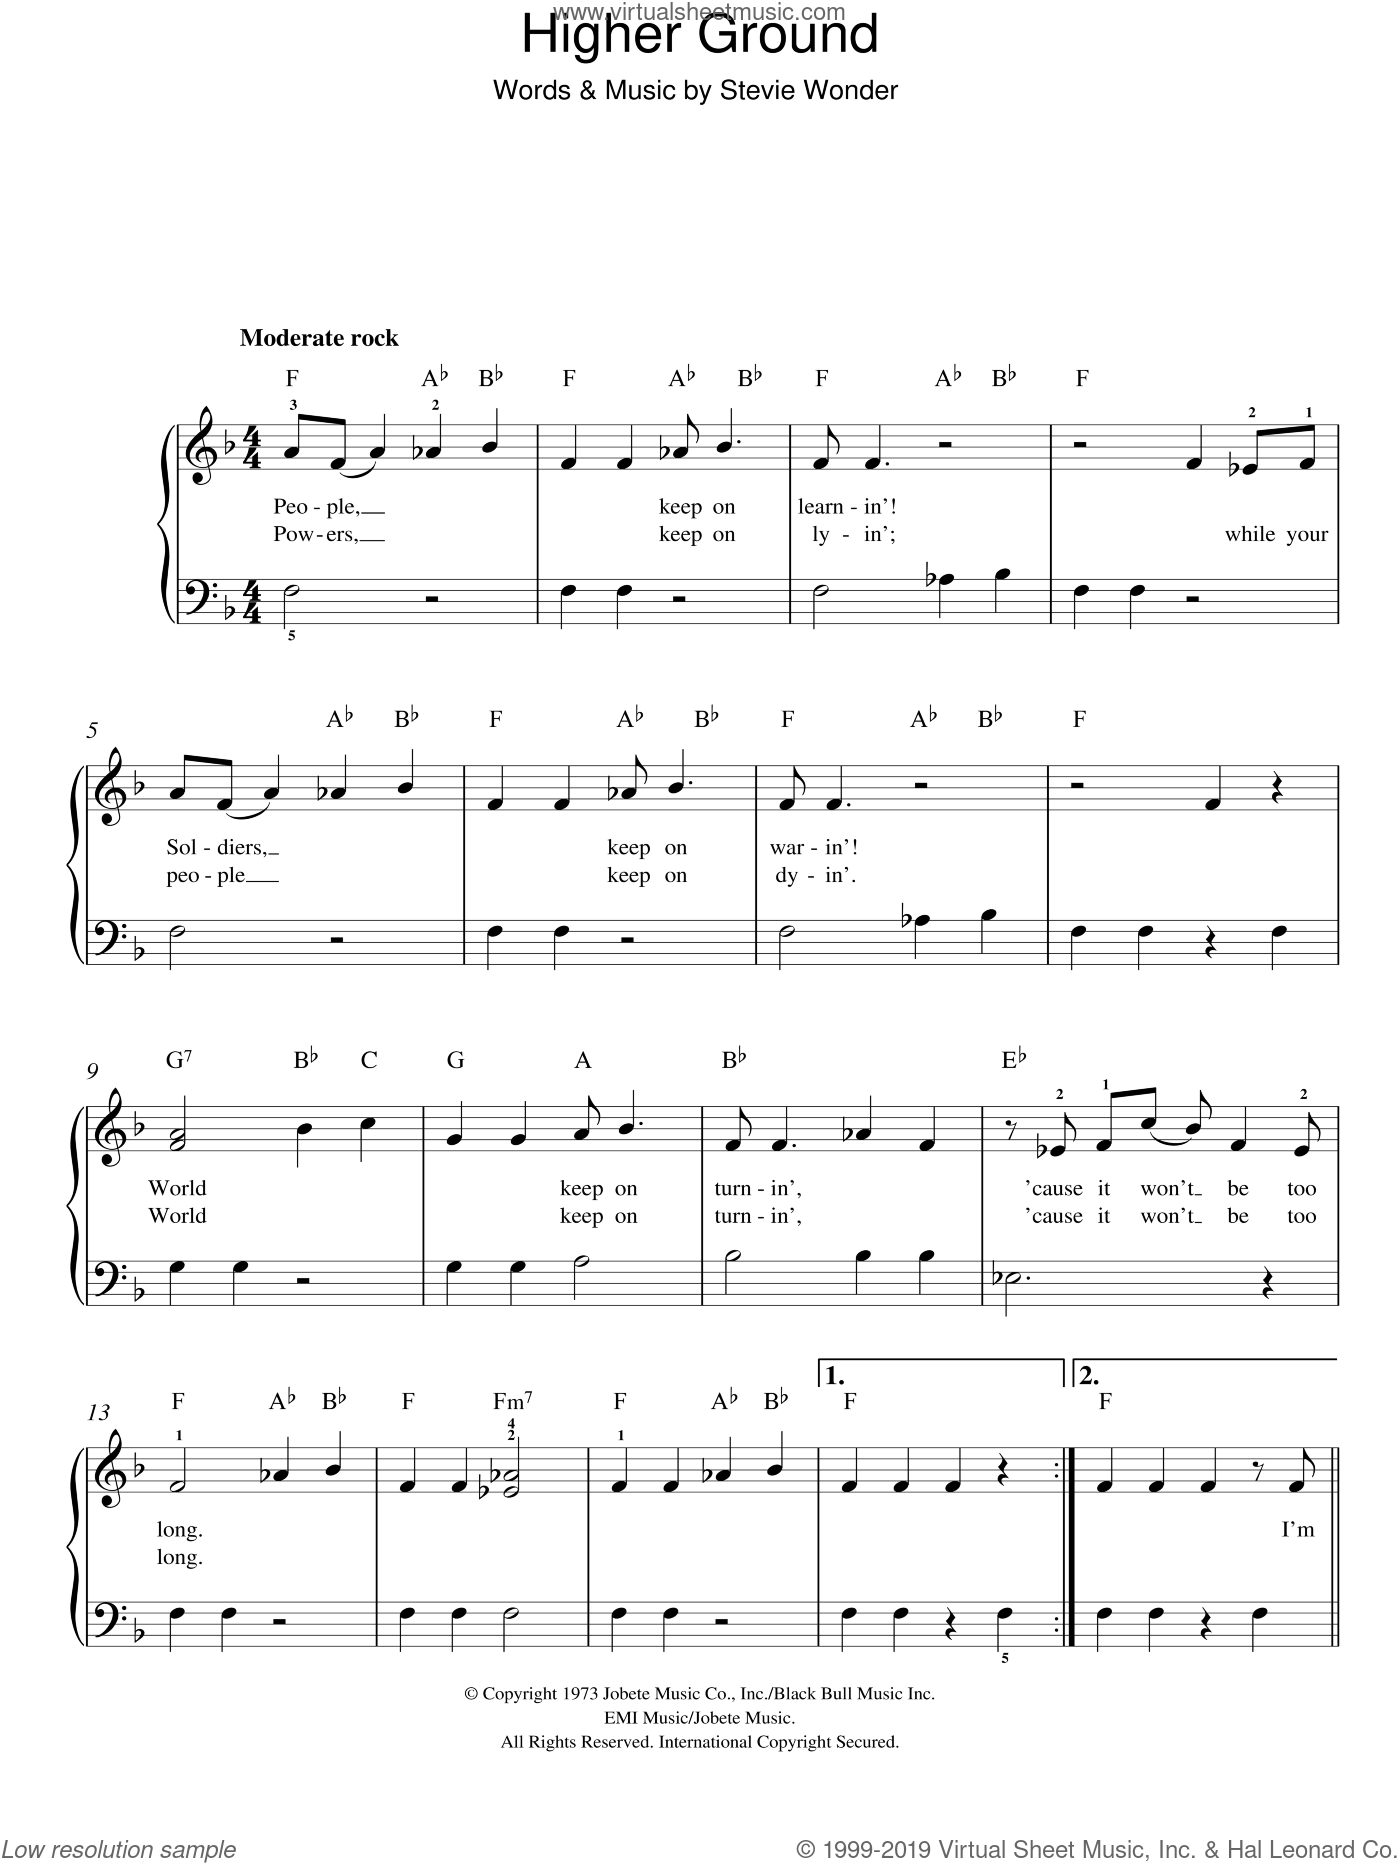 Higher Ground sheet music for piano solo by Stevie Wonder